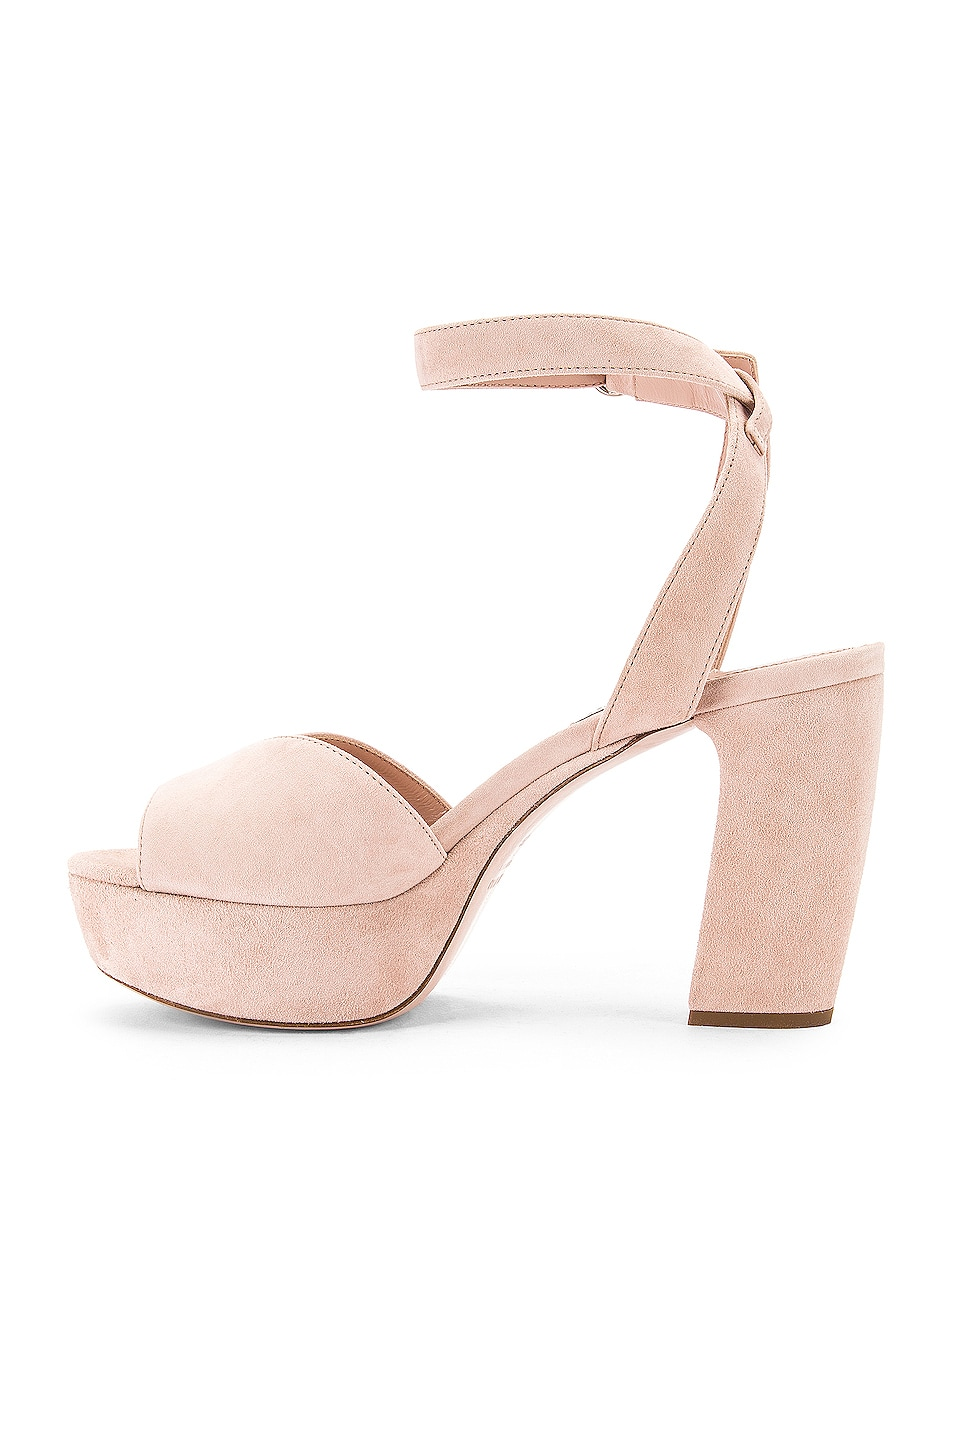 Image 5 of Miu Miu Platform Ankle Strap Sandals in Nude